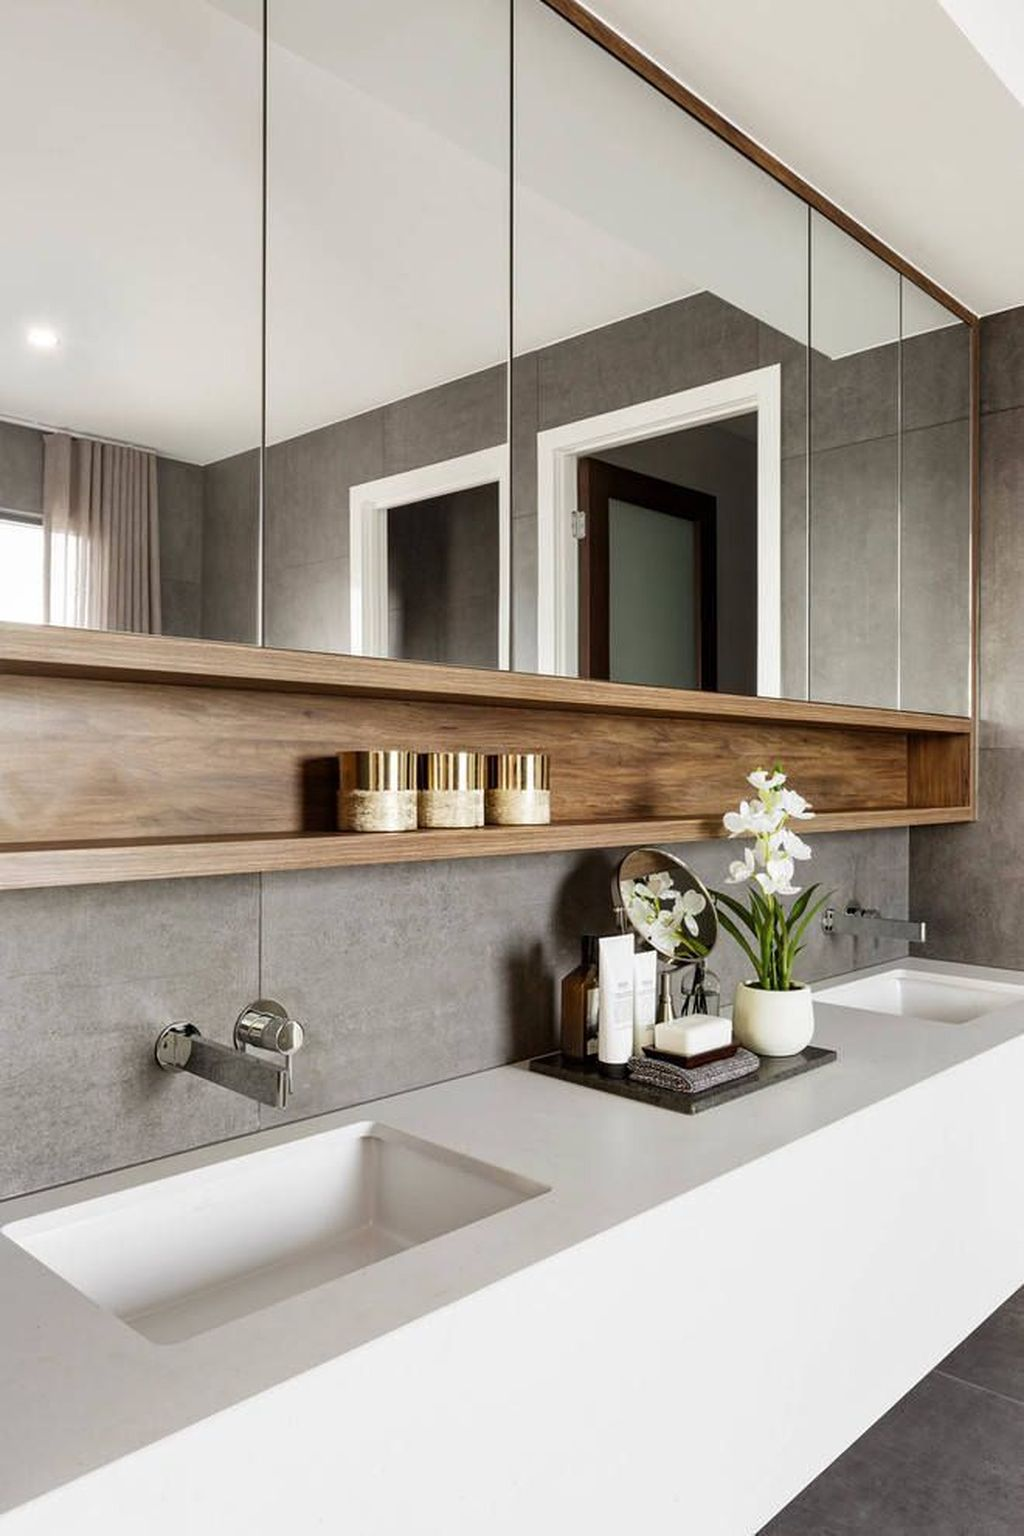 Inspiring Bathroom Interior Design Ideas 35